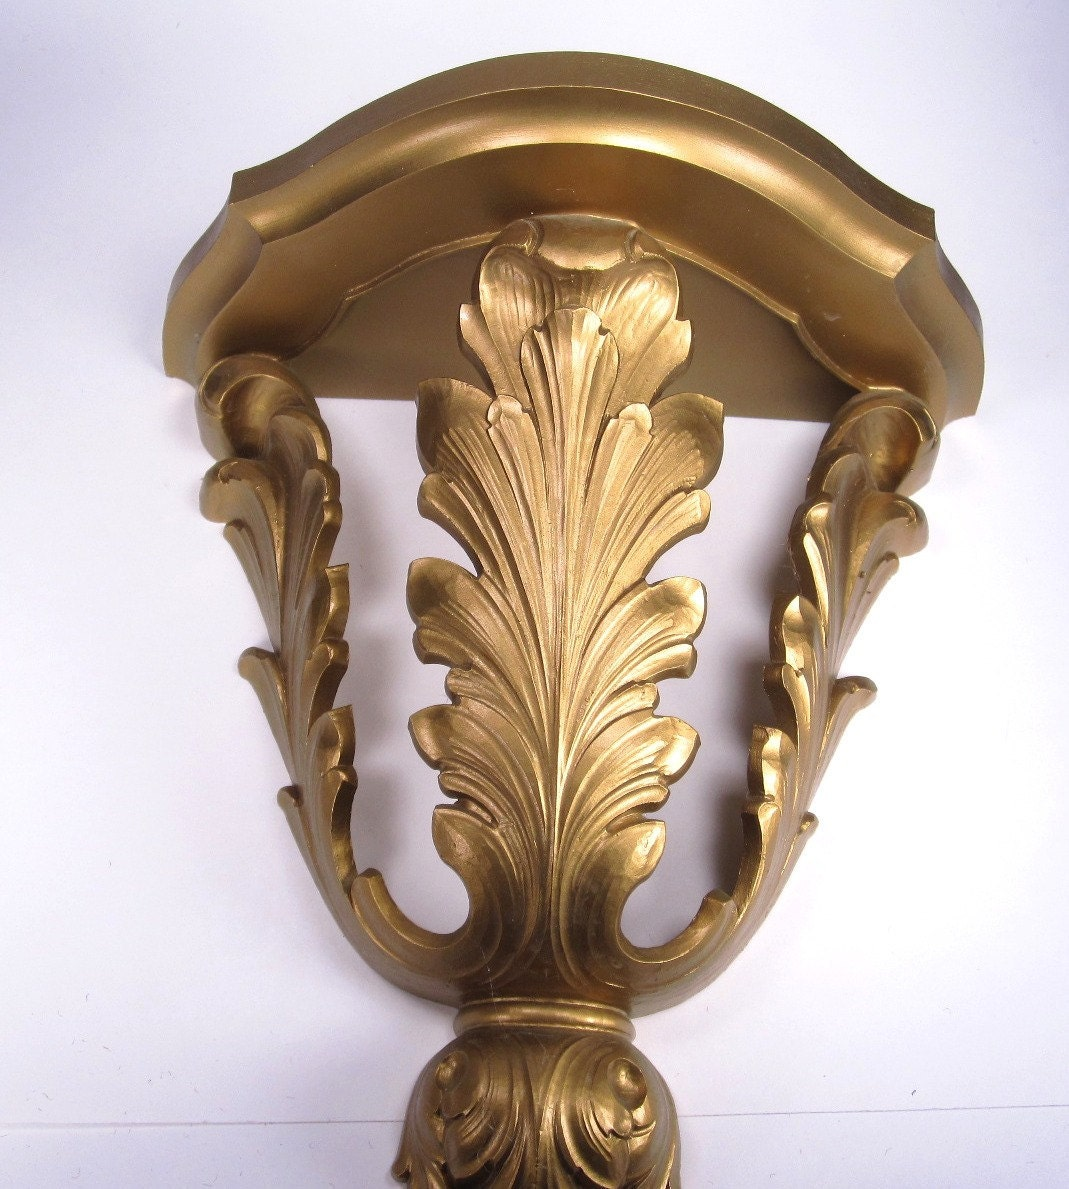 Wall Sconces Shelf : Vintage Homco 1970s Wall Shelf or Sconce Gold Wall Decor